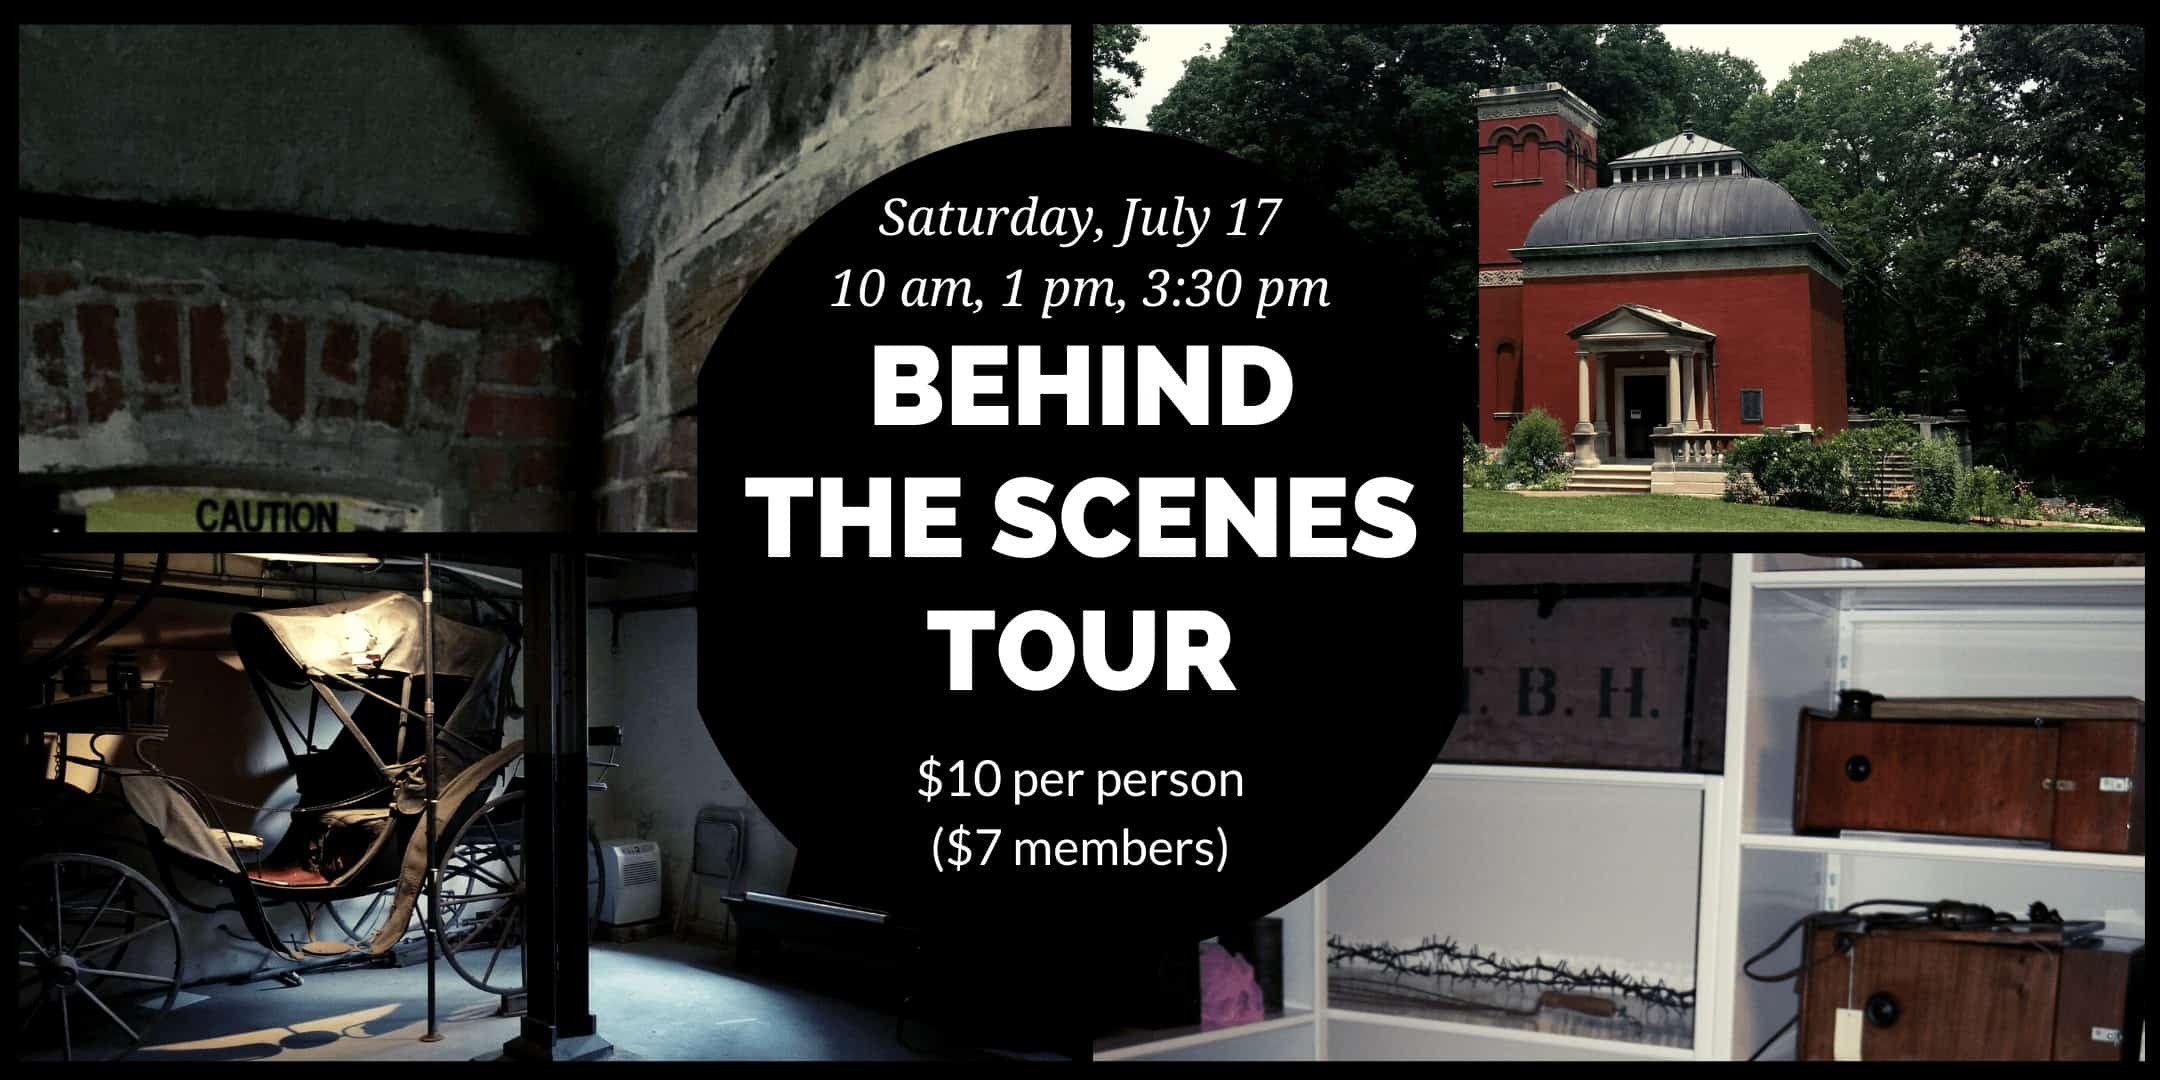 Behind the Scenes Tour 2021, Saturday, July 17, 10 am, 1 pm, 3:30 pm